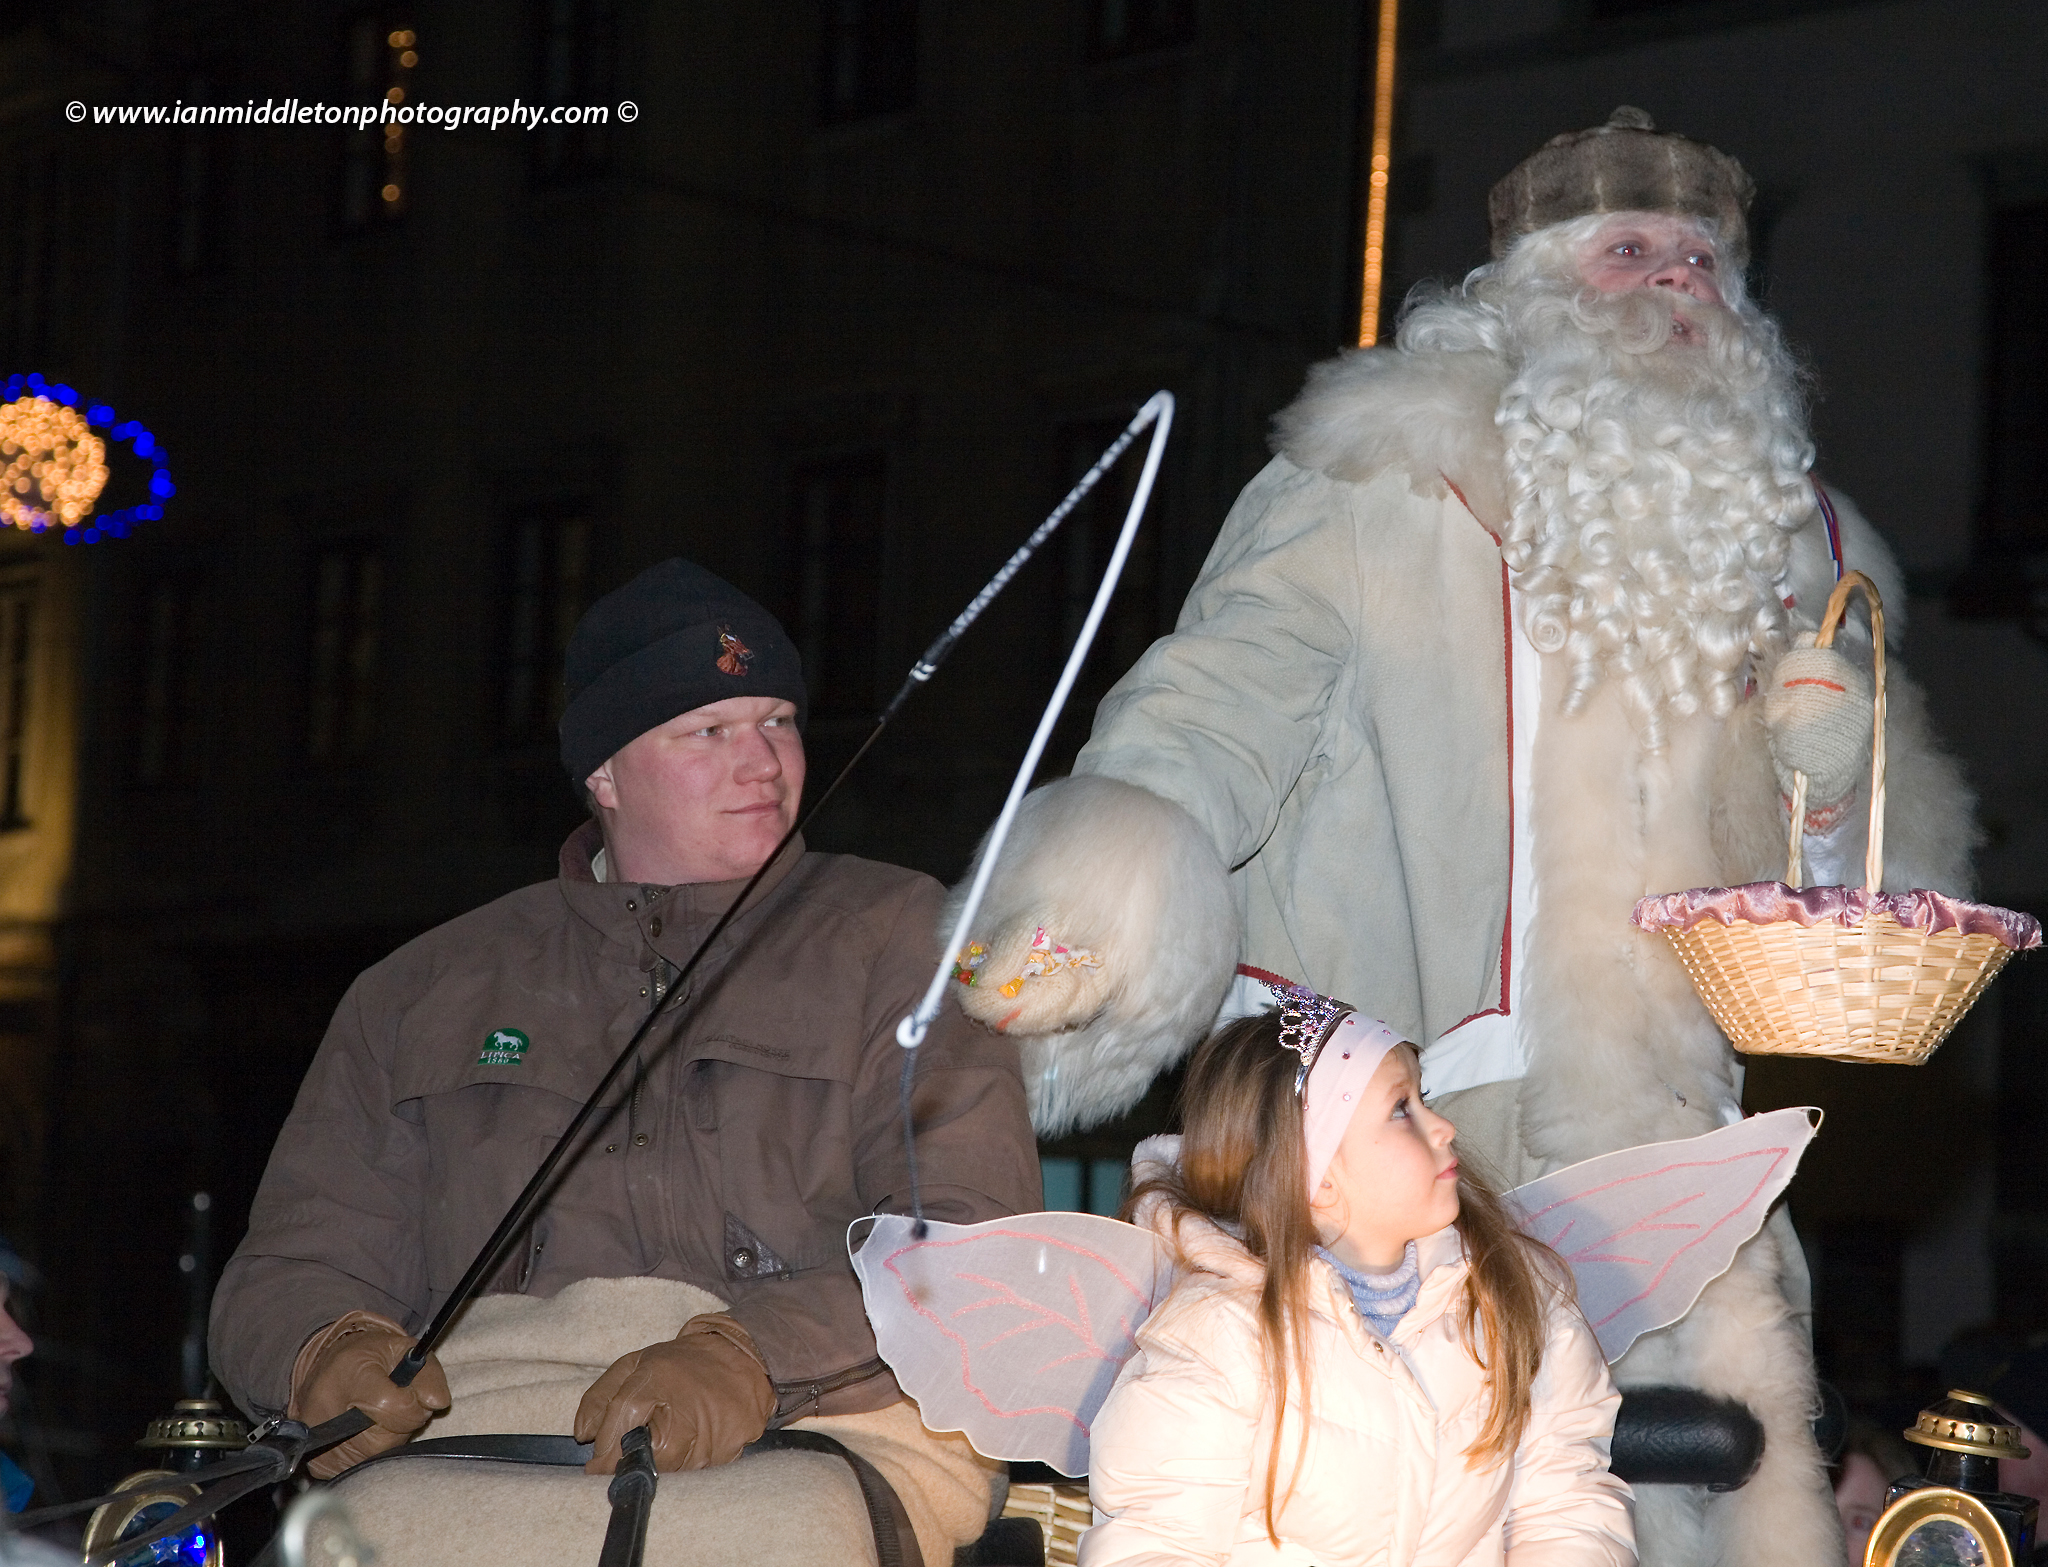 Dedek Mraz procession in Ljubljana, Slovenia. Also known as Grandfather Cold or Grandfather Frost, this tradition was used by the communists as a replacement for the western Santa Claus. The tradition comes from a ancient Russian Legend of Ded Moroz, and he wears a white outfit and Russian Kuchma Hat.